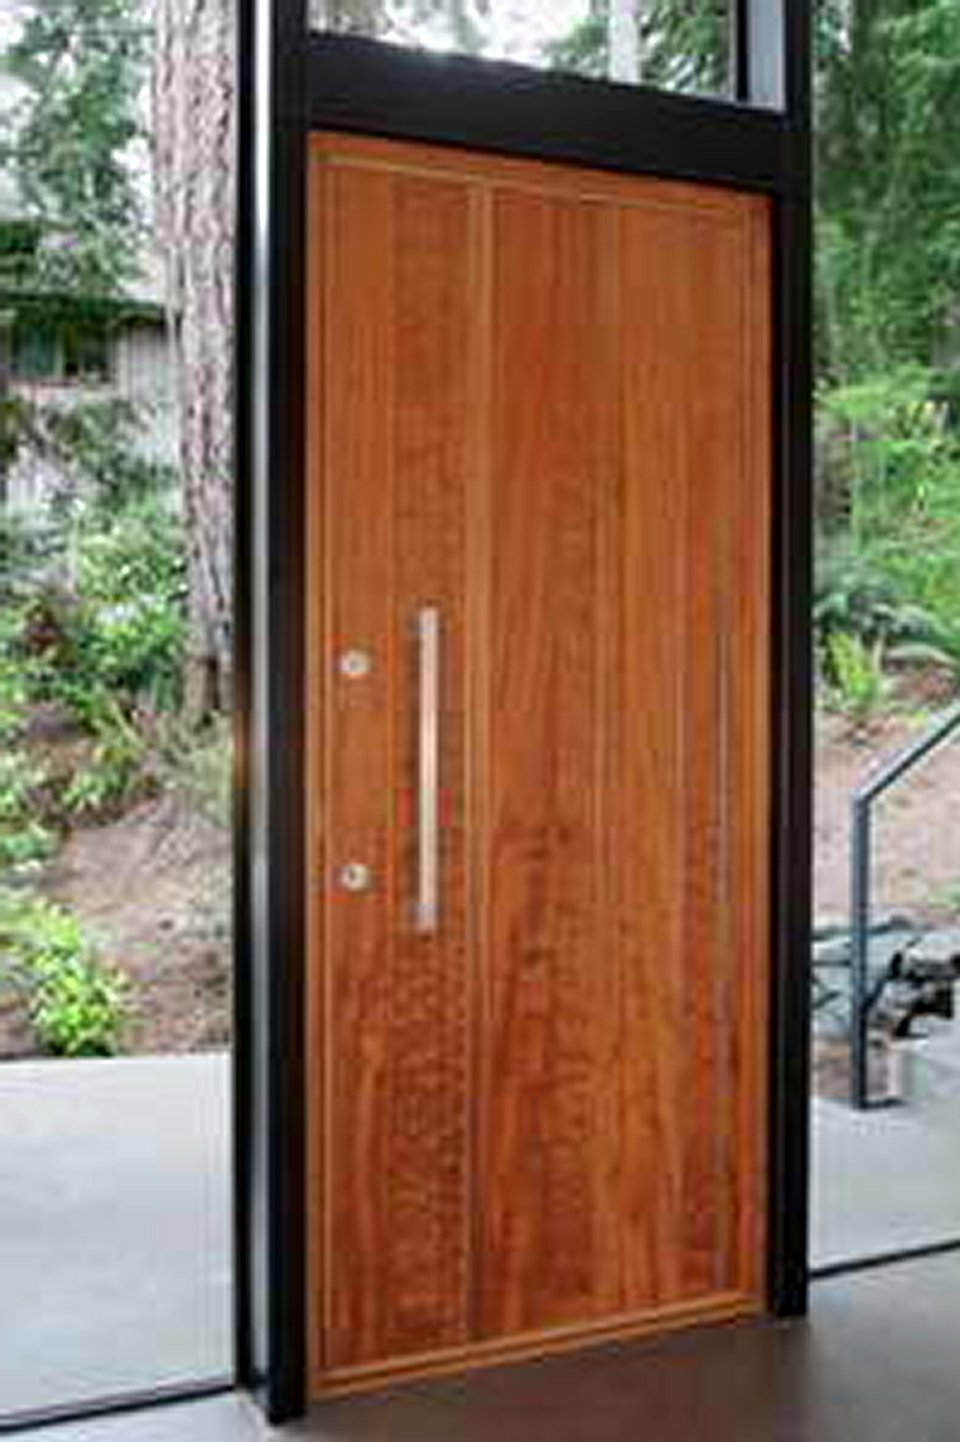 Exterior Doors For Sale Of Oak Exterior Doors For Sale Home Design Ideas